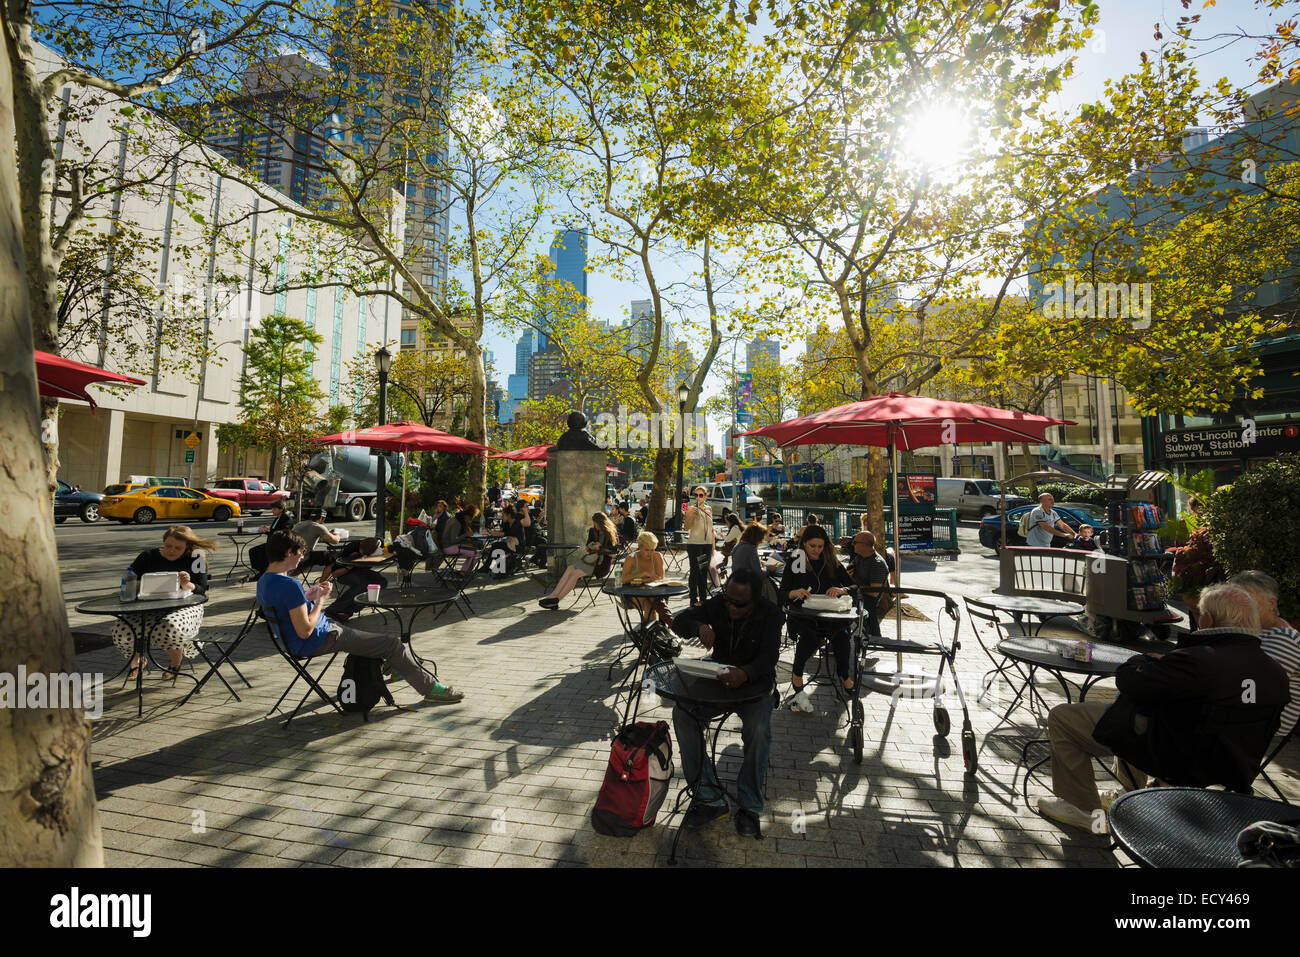 Square in front of the Lincoln Center, Manhattan, New York, United States - Stock Image